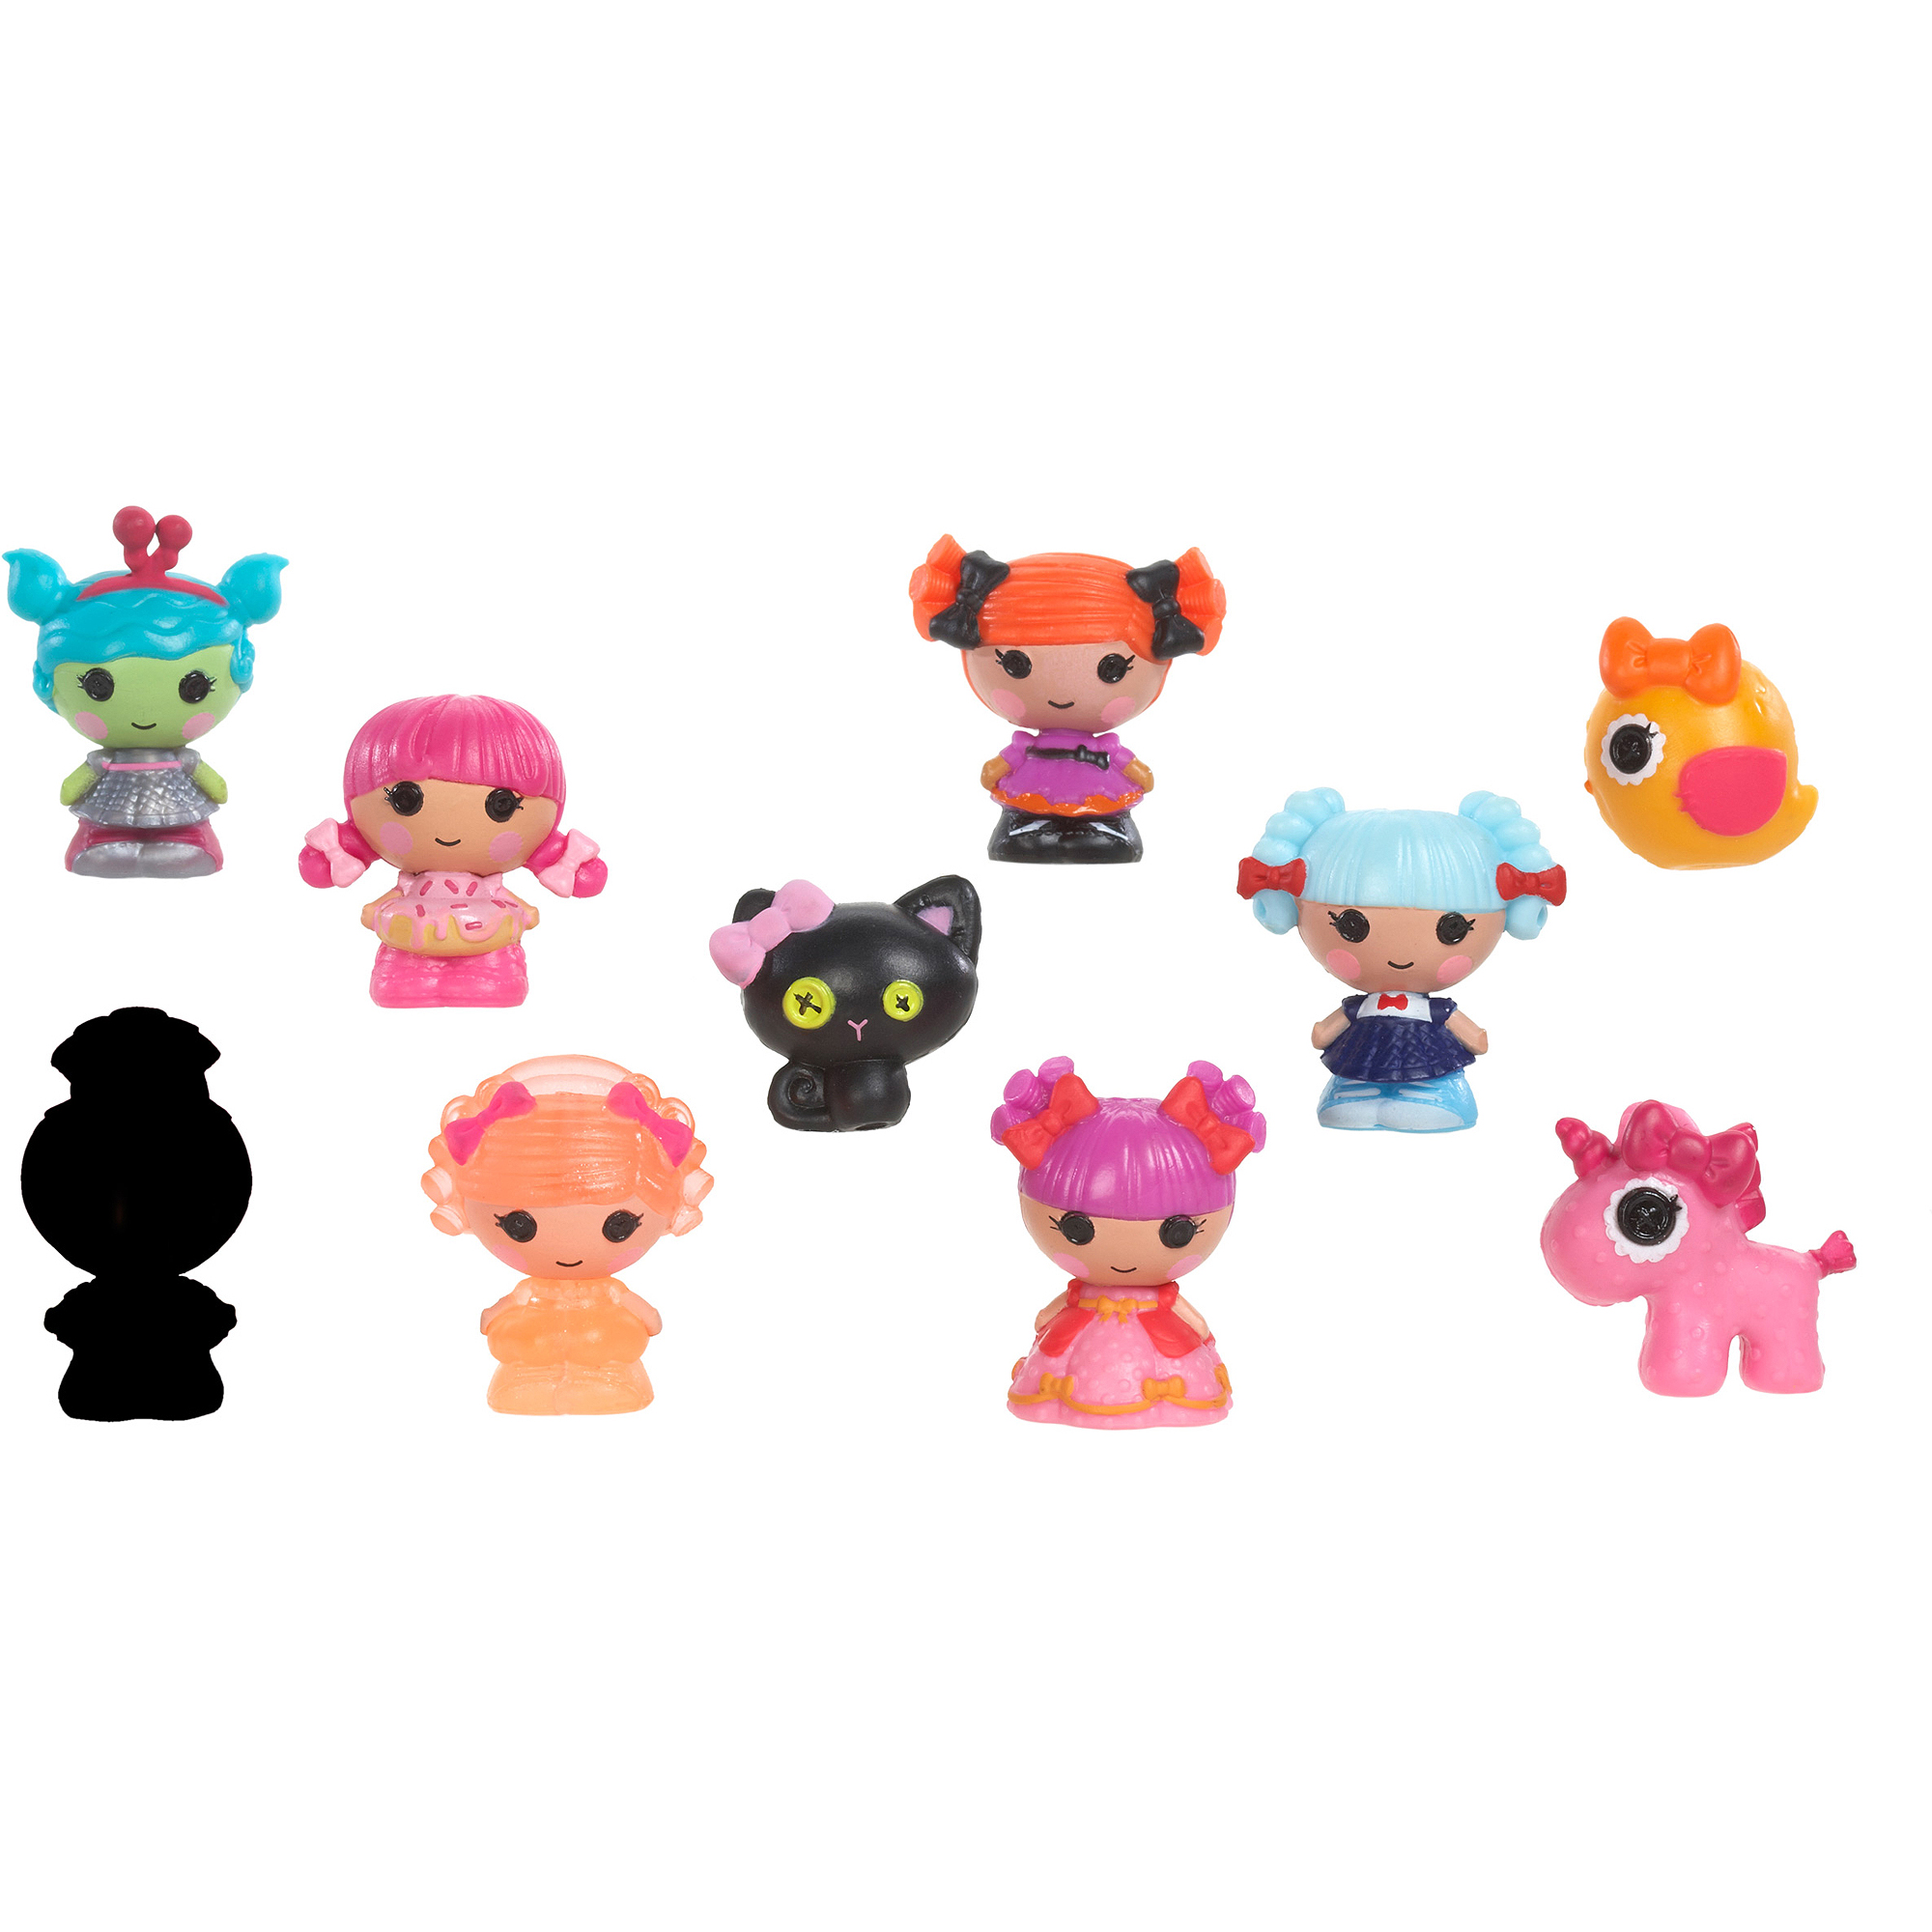 Lalaloopsy Tinies 10-Pack, Style 3